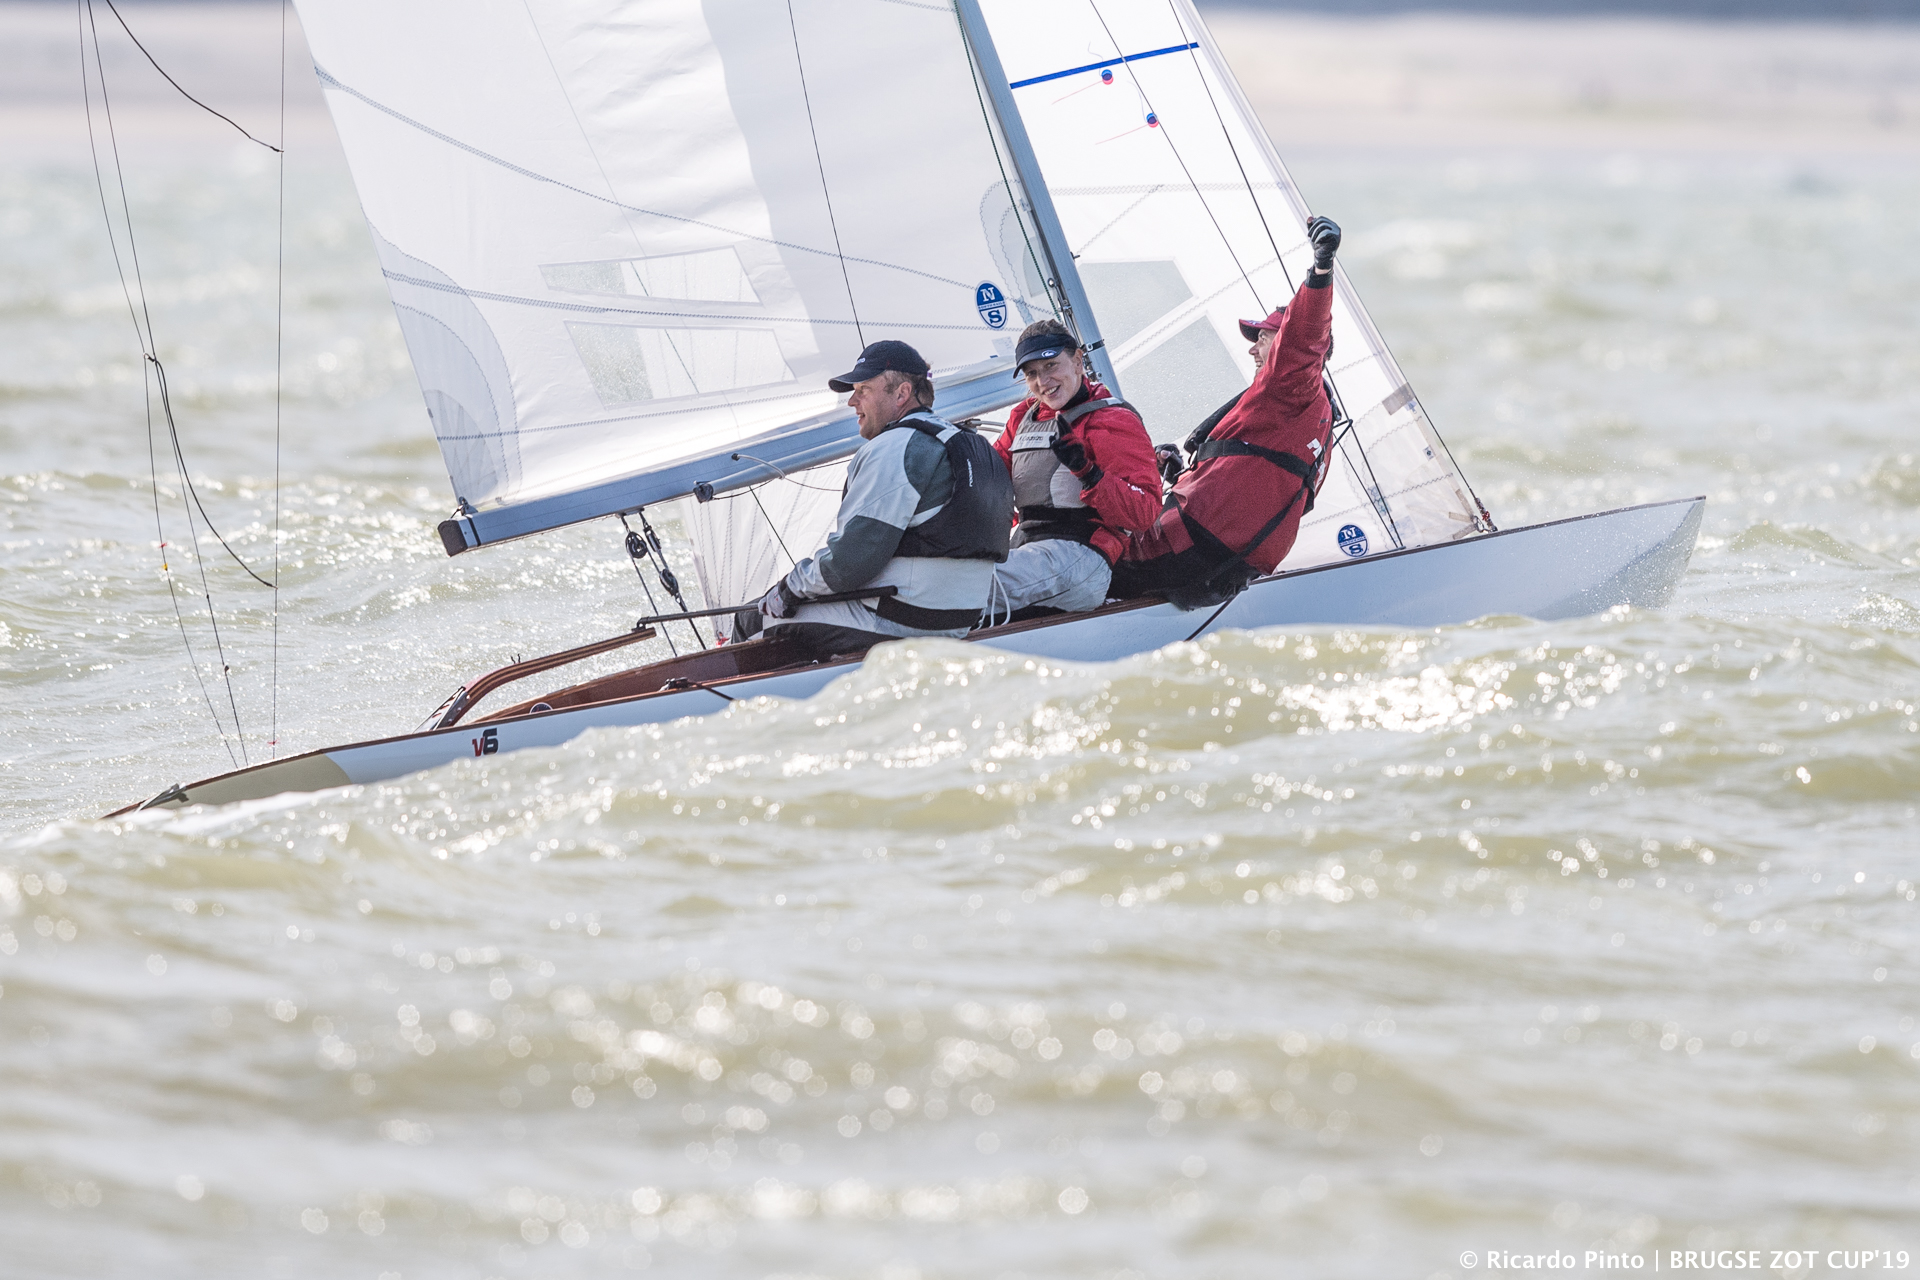 05/08/2019 - Ostend (BEL) - Brugse Zot Cup 2019 - Day 3